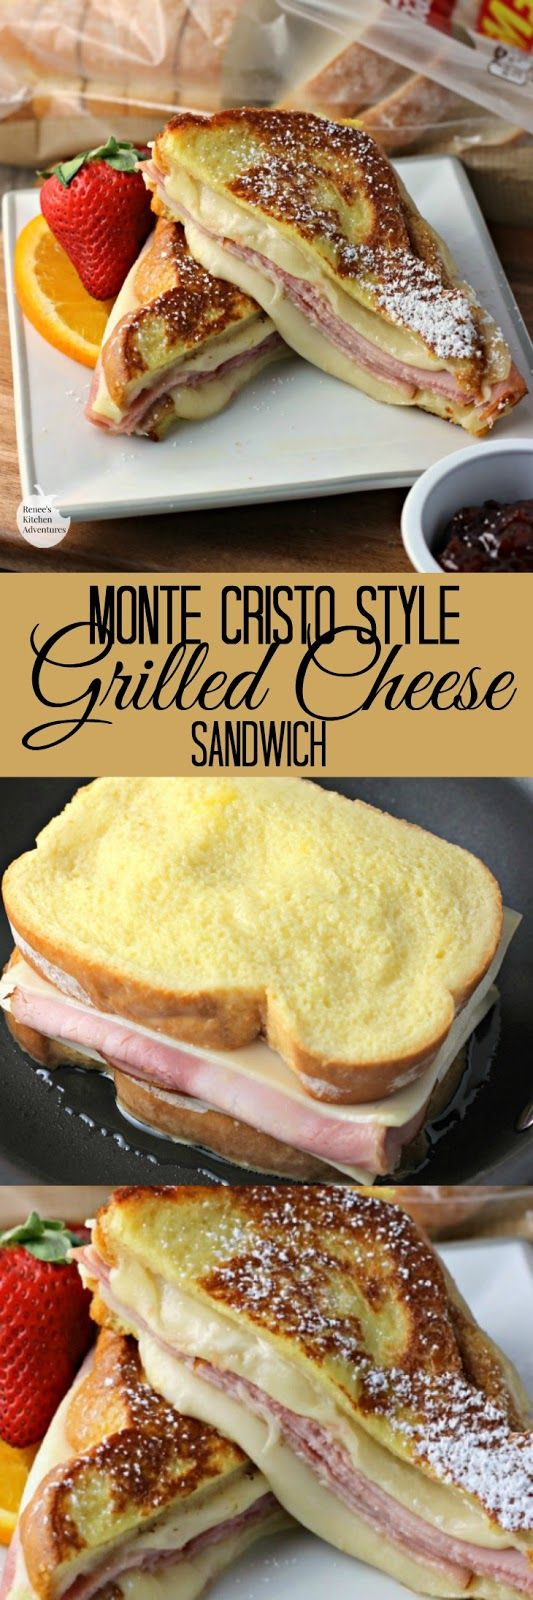 Monte Cristo Style Grilled Cheese Sandwich   by Renee's Kitchen Adventures - easy recipe for sweet and savory grilled cheese sandwich with ham and swiss. Great for lunch or dinner. AD ArtesanoBread